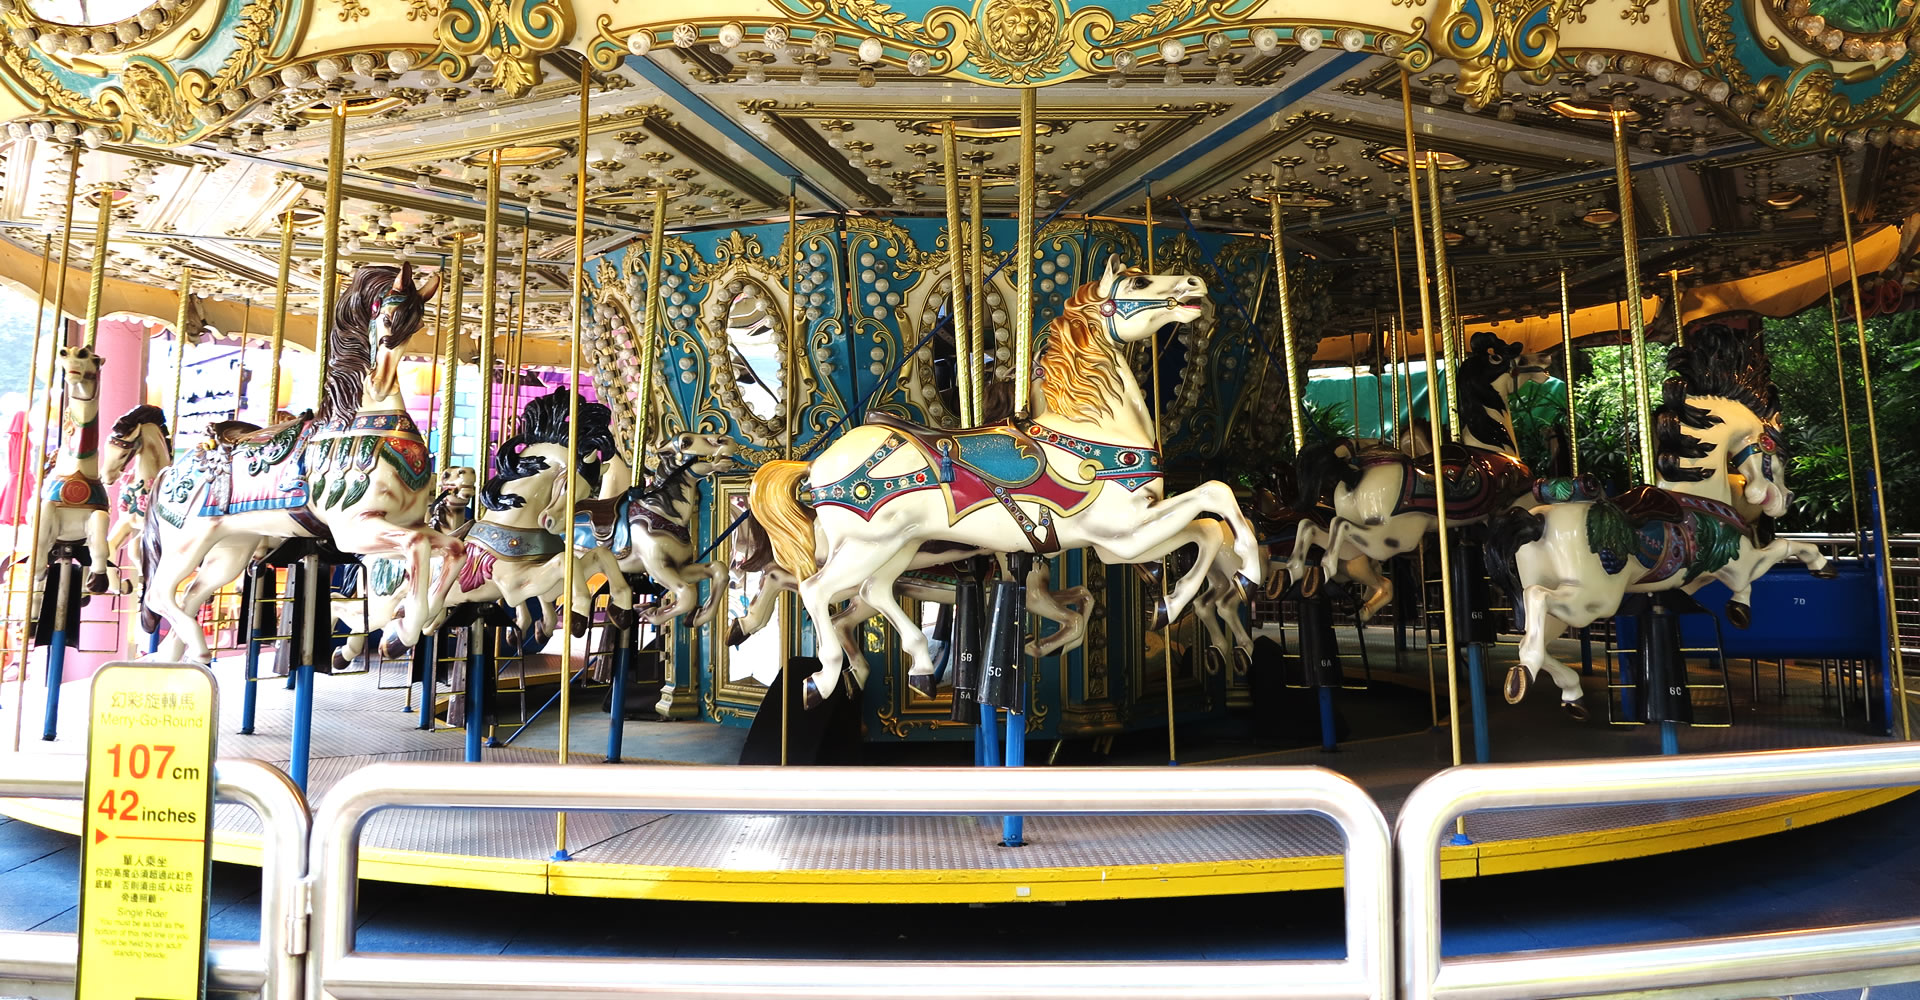 https://media.oceanpark.com.hk/files/s3fs-public/Merry-Go-Round.jpg